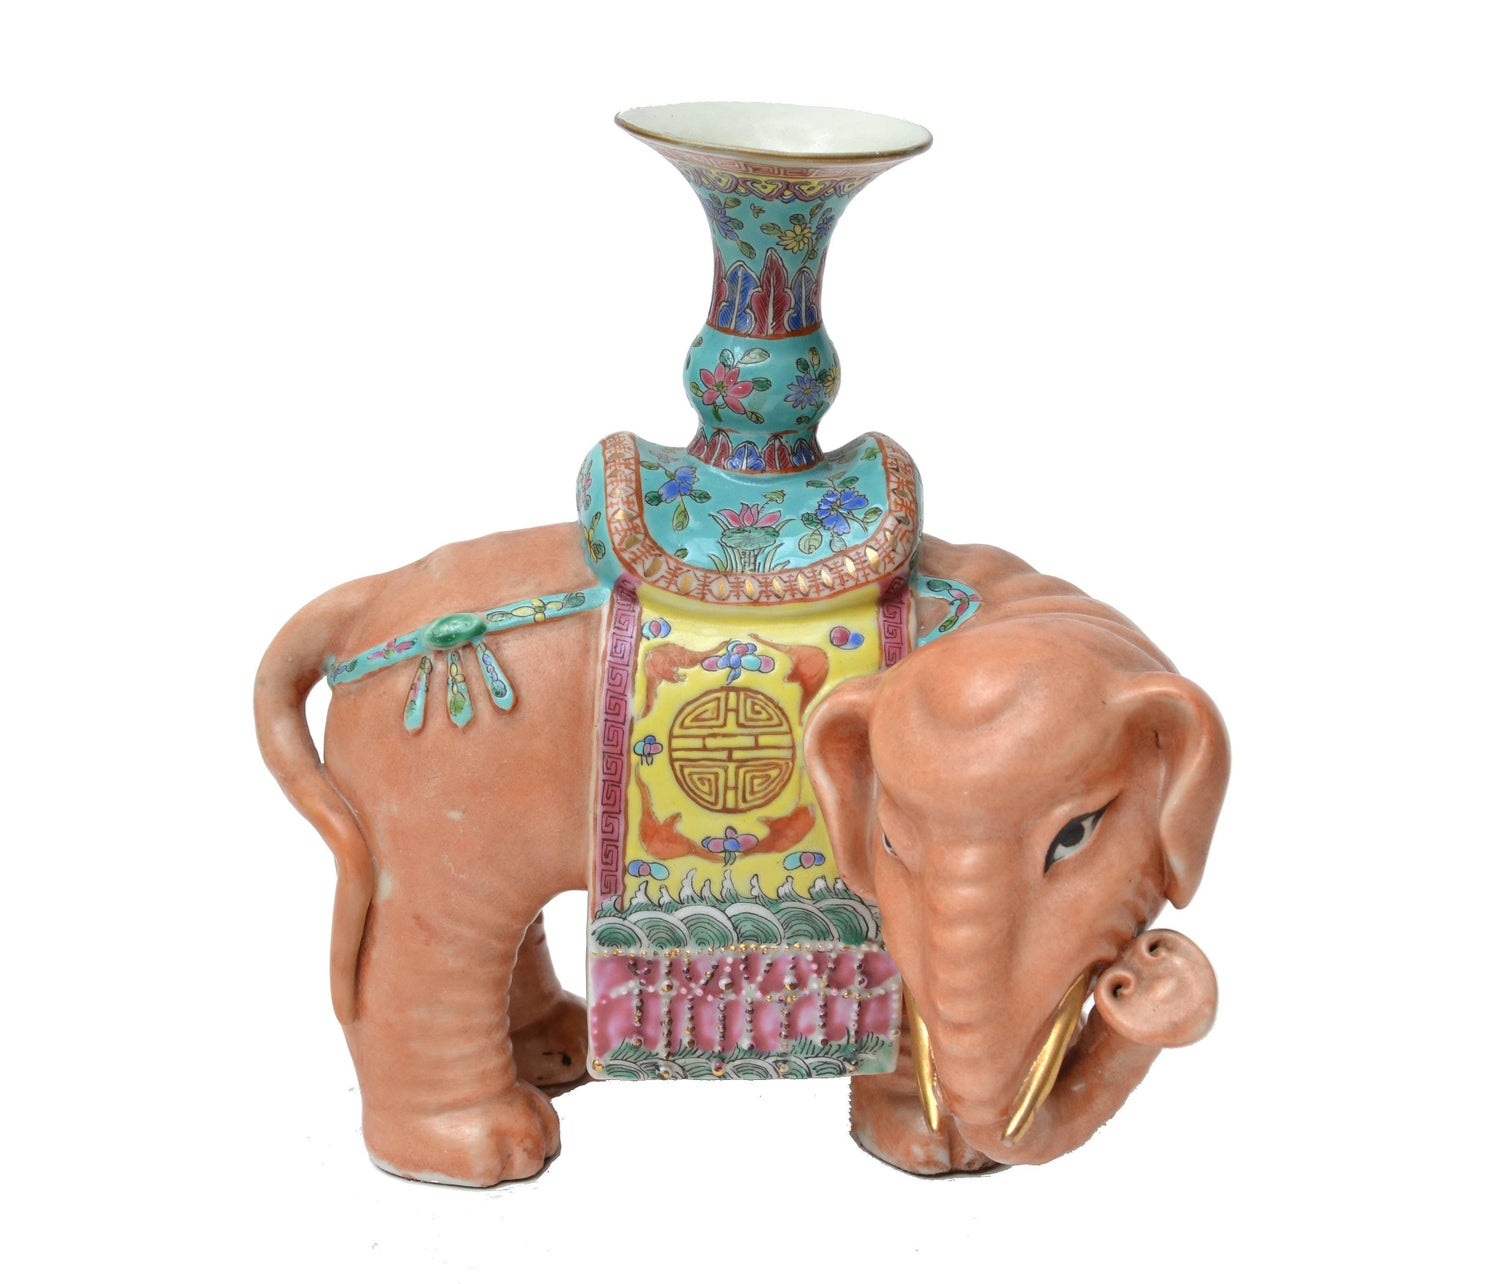 Chinese Elephant Sculpture, Signed For Sale at 1stdibs